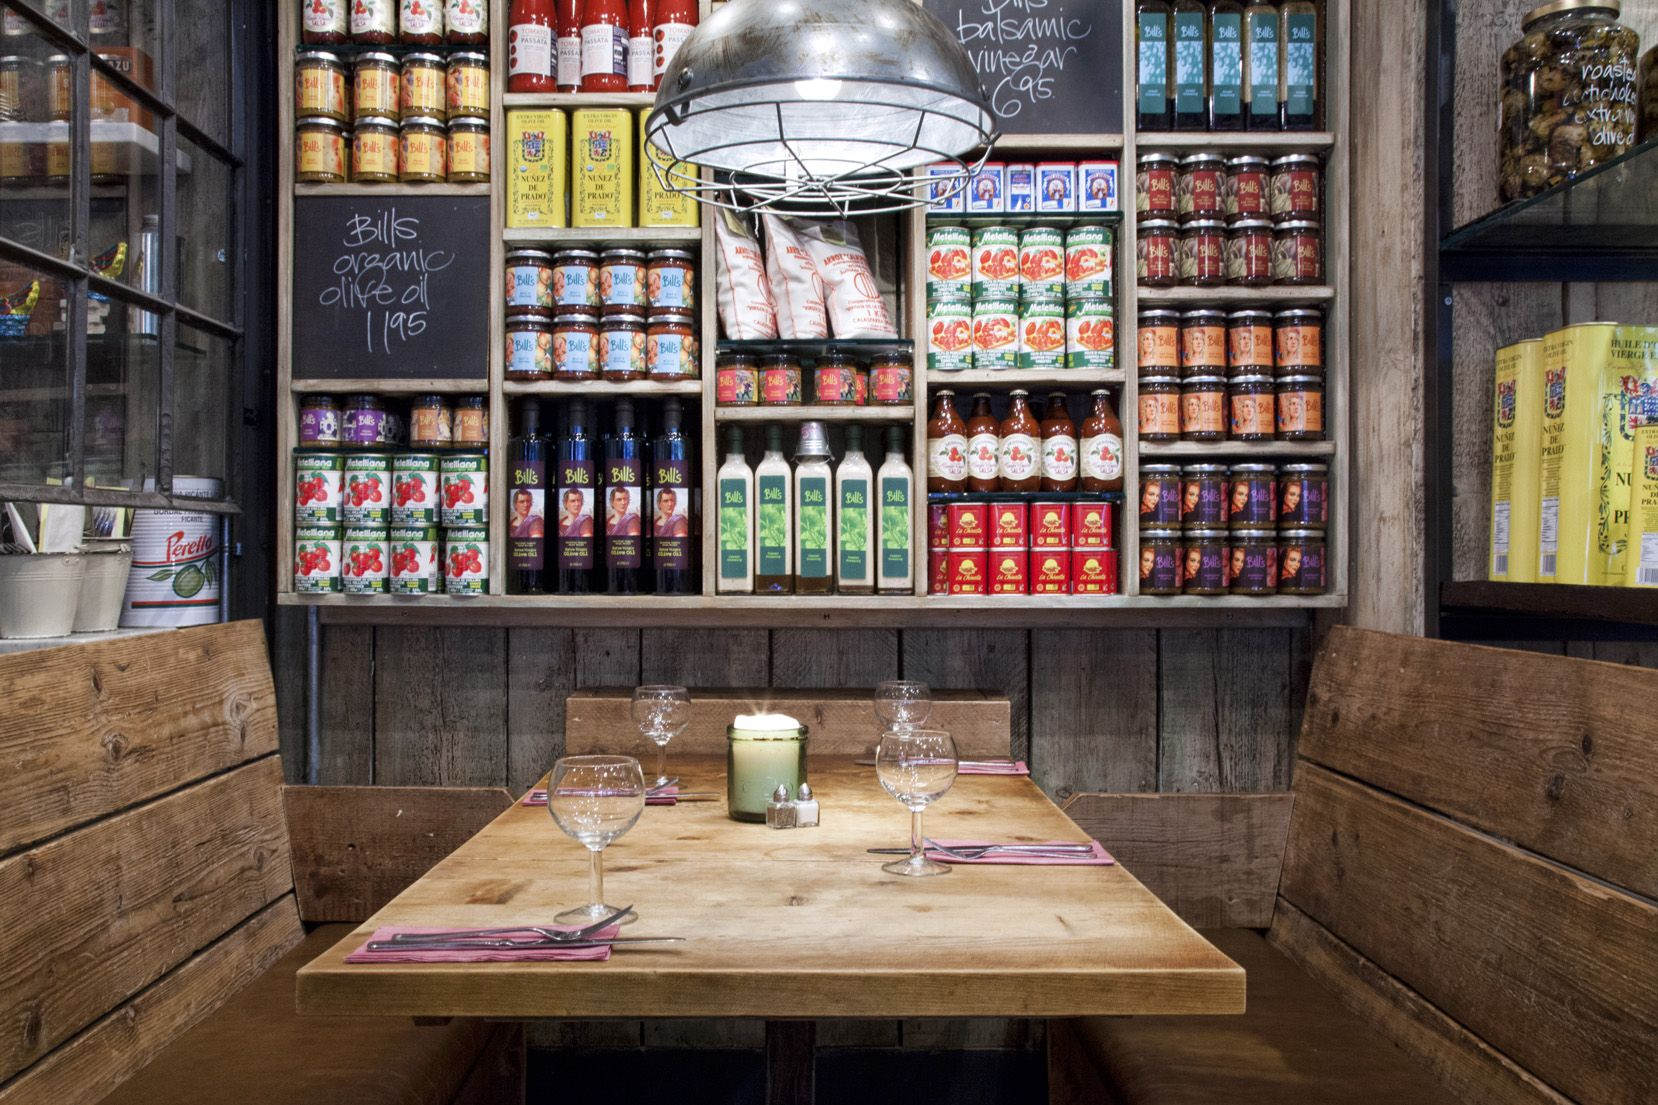 i like this with its rustic look and very corner store-colorful